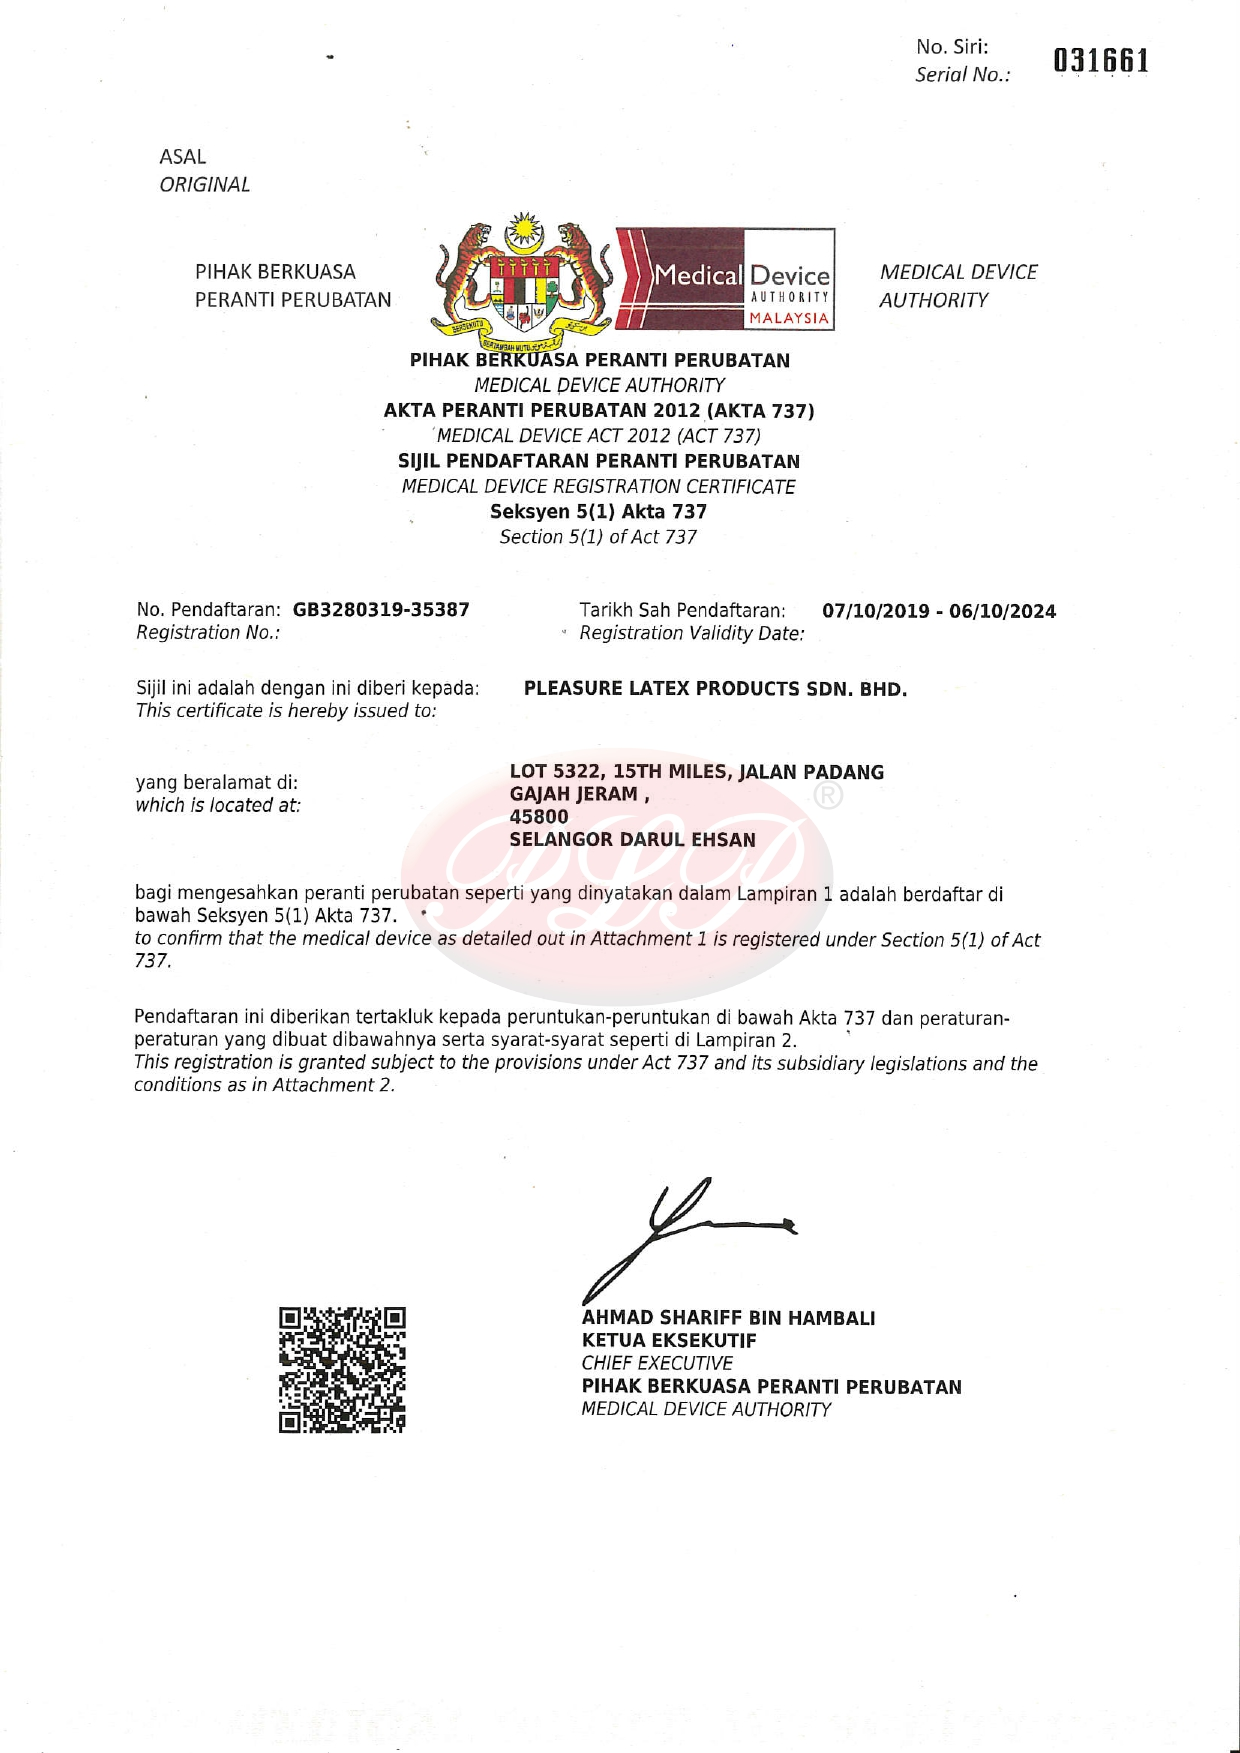 Malaysia MDA Registration Certificate - Sure Personal Lube